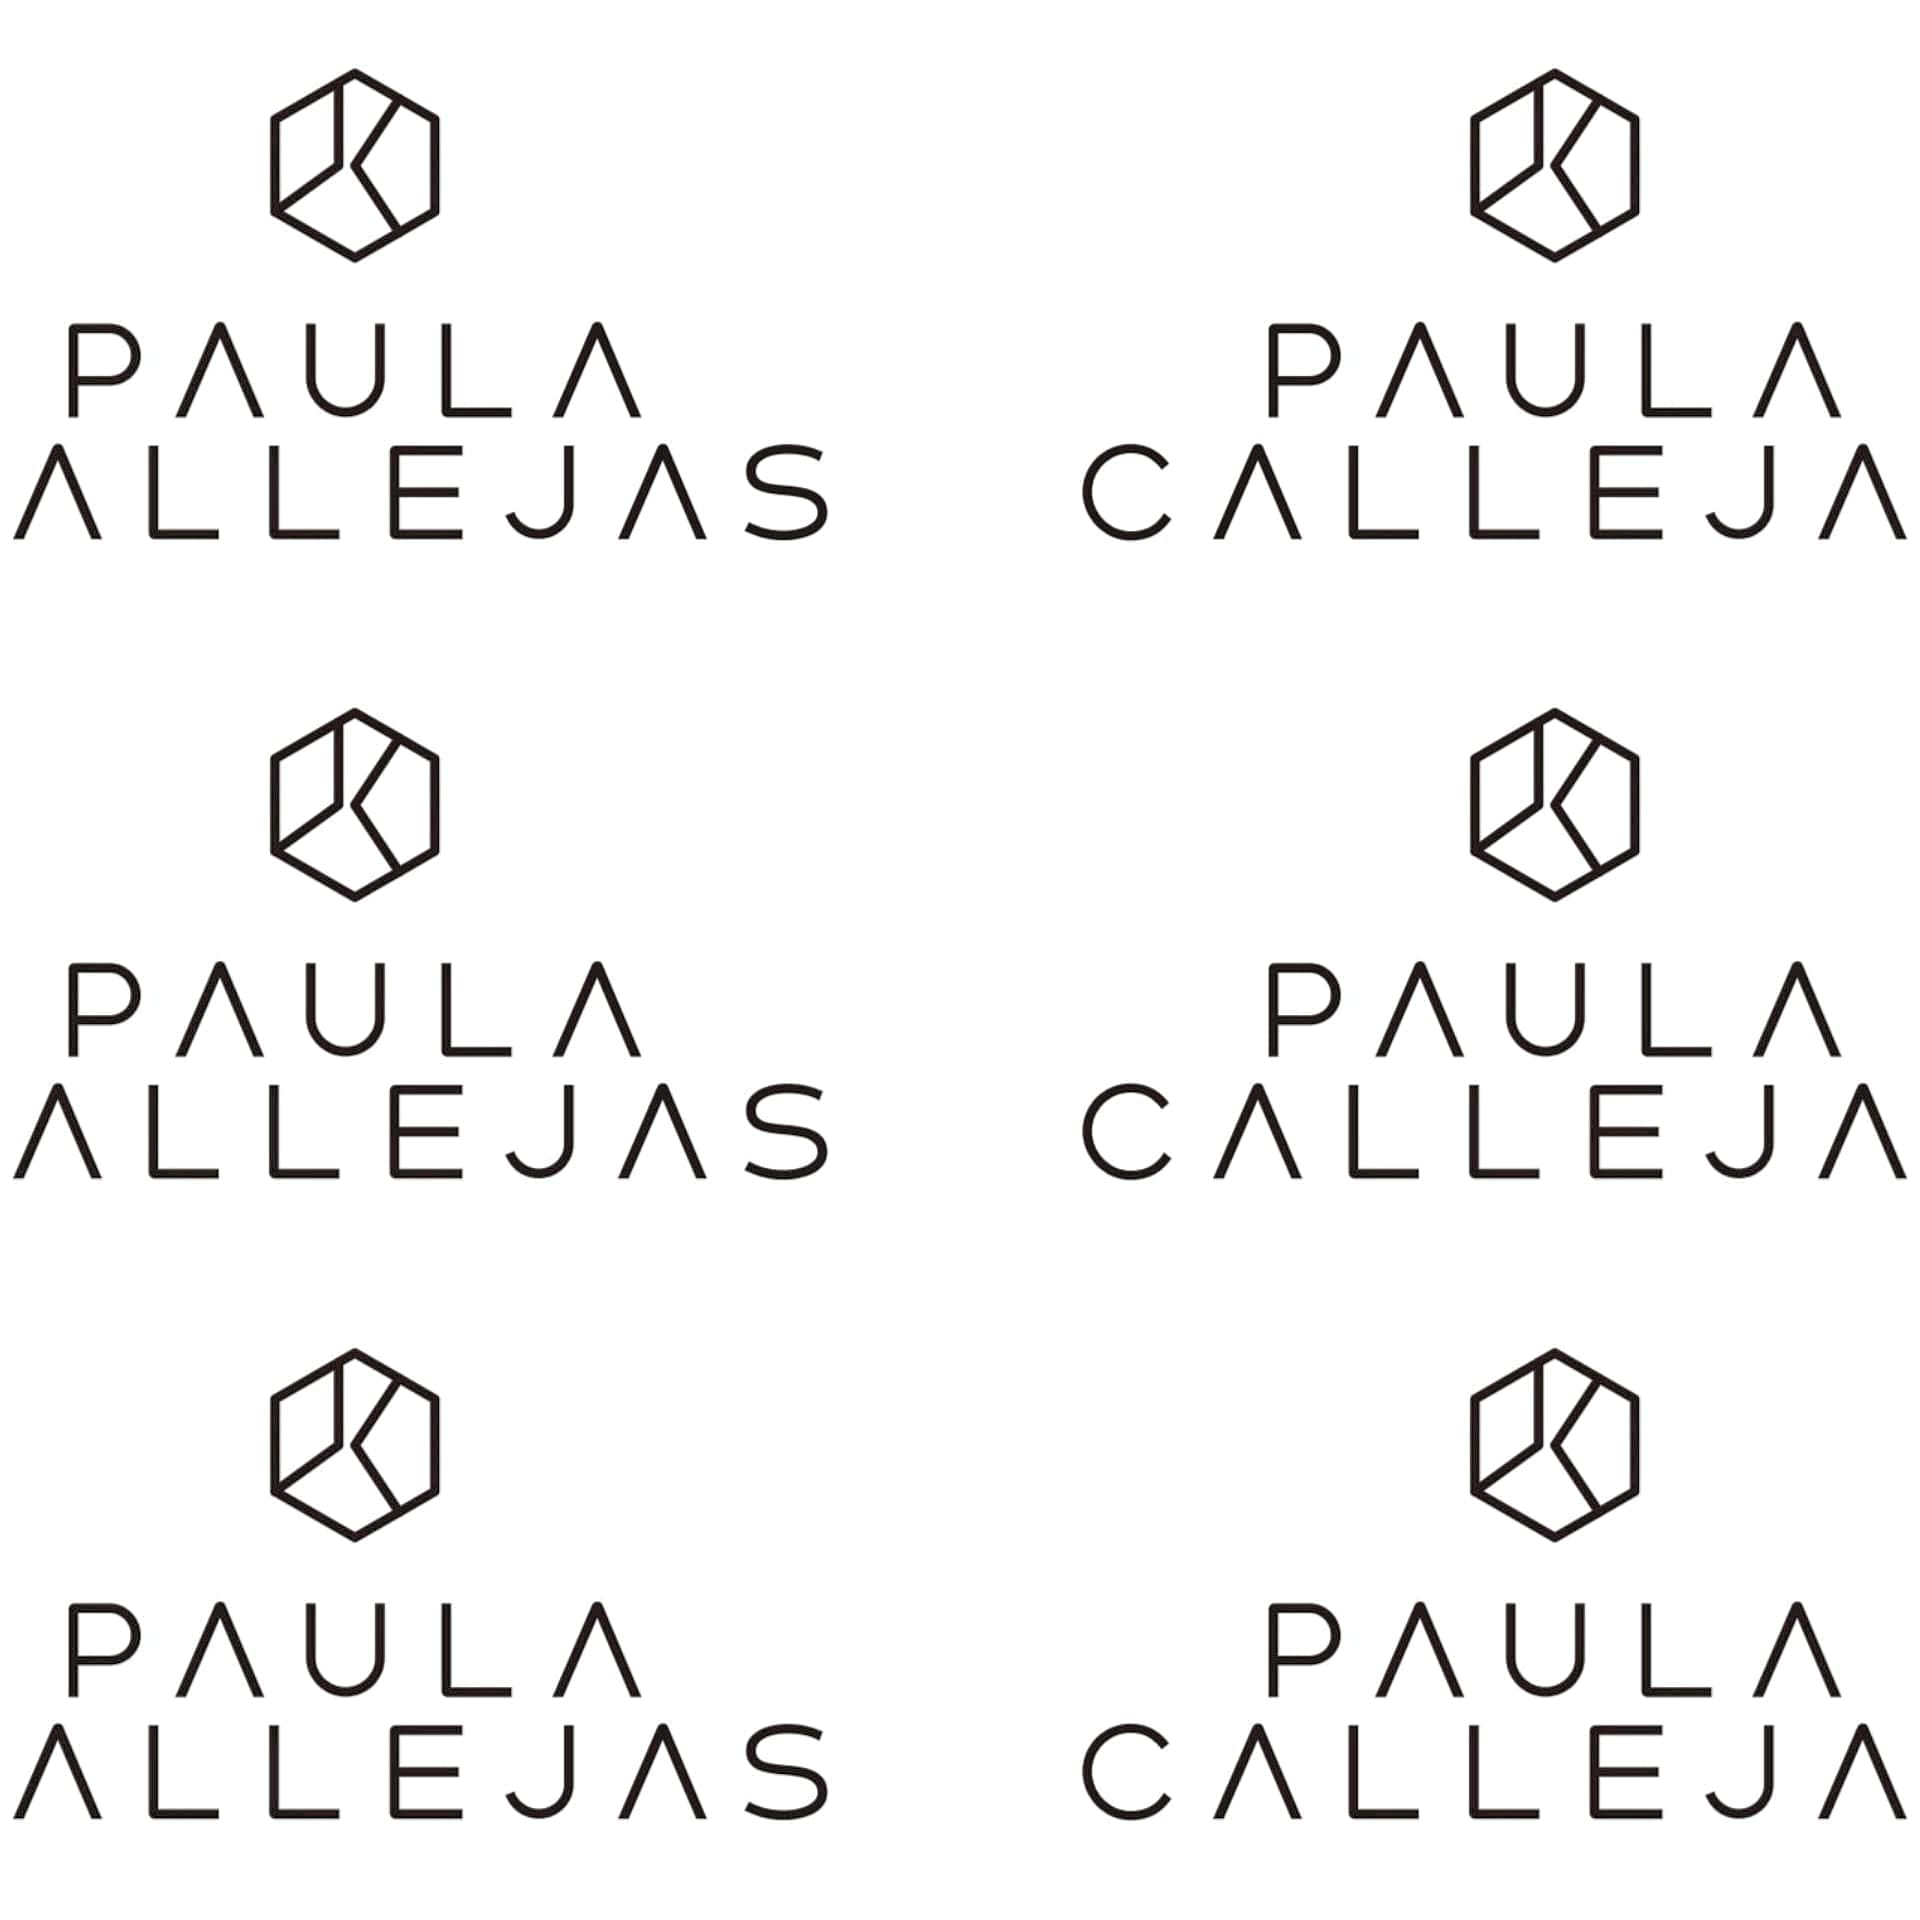 [COMING SOON] Good News to Share – Paula Callejas Group – Fashion Design